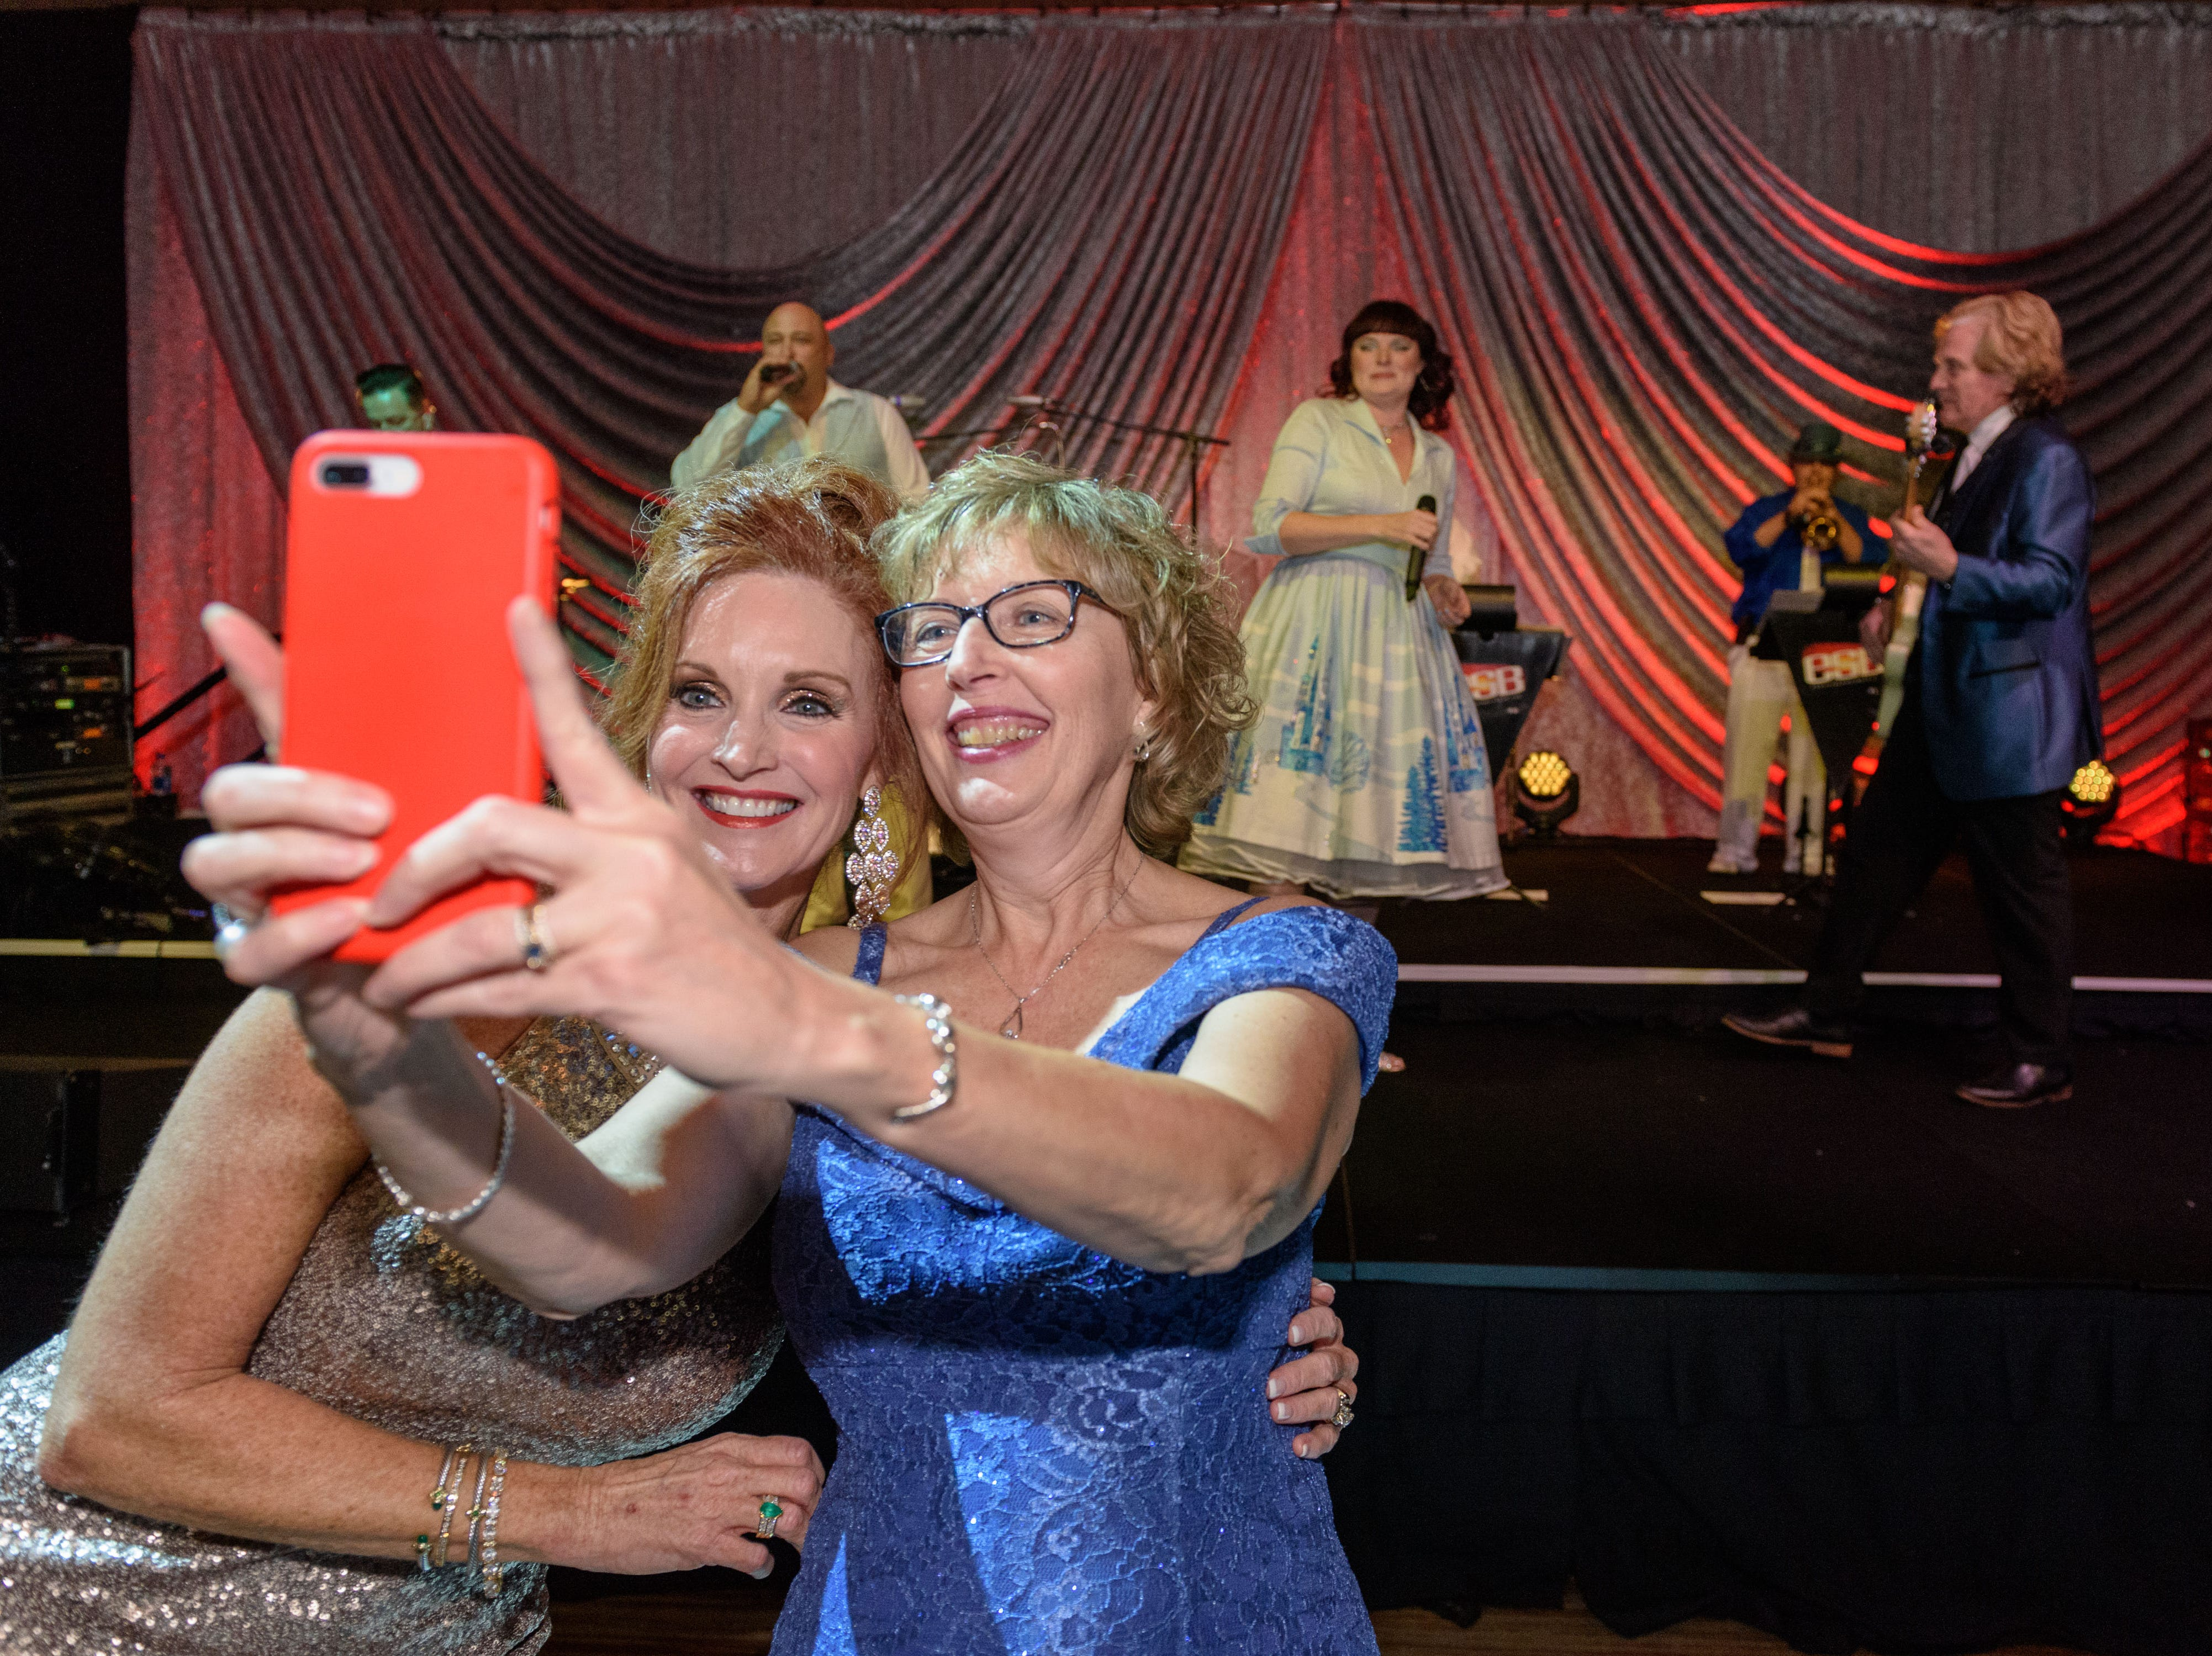 Kim Hartlage and Vicki Montgomery take a selfie with the Endless Summer Band at the Snow Ball Gala at the Omni Hotel, a benefit for the Jennifer Lawrence Cardiac Intensive Care Unit (CICU) at Norton ChildrenÕs Hospital. Nov. 17, 2018